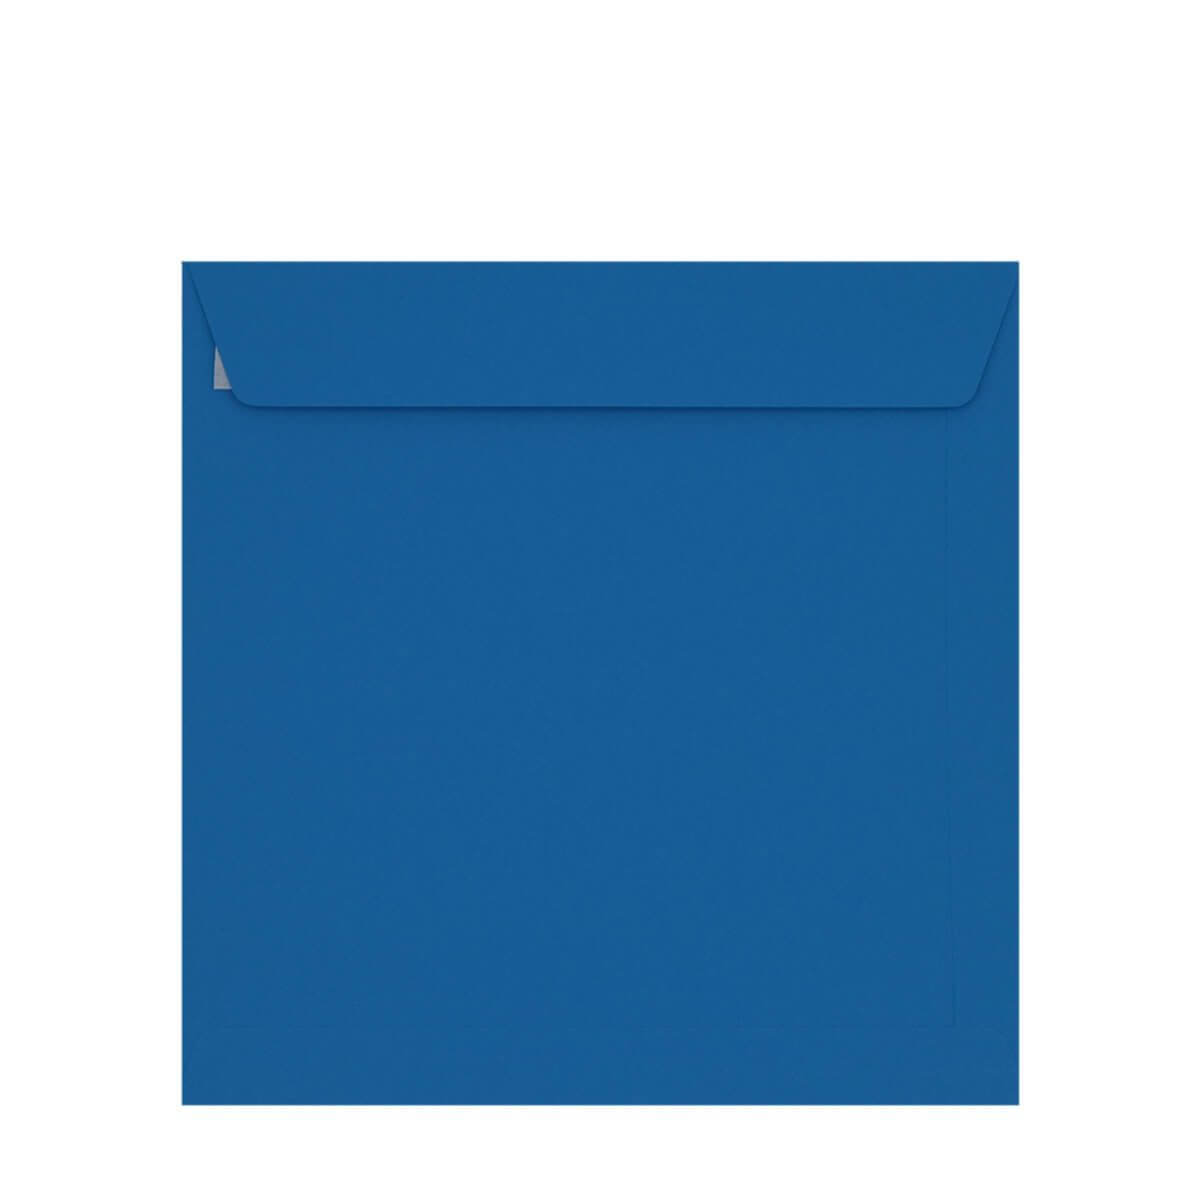 BRIGHT BLUE 220mm SQUARE PEEL & SEAL ENVELOPES